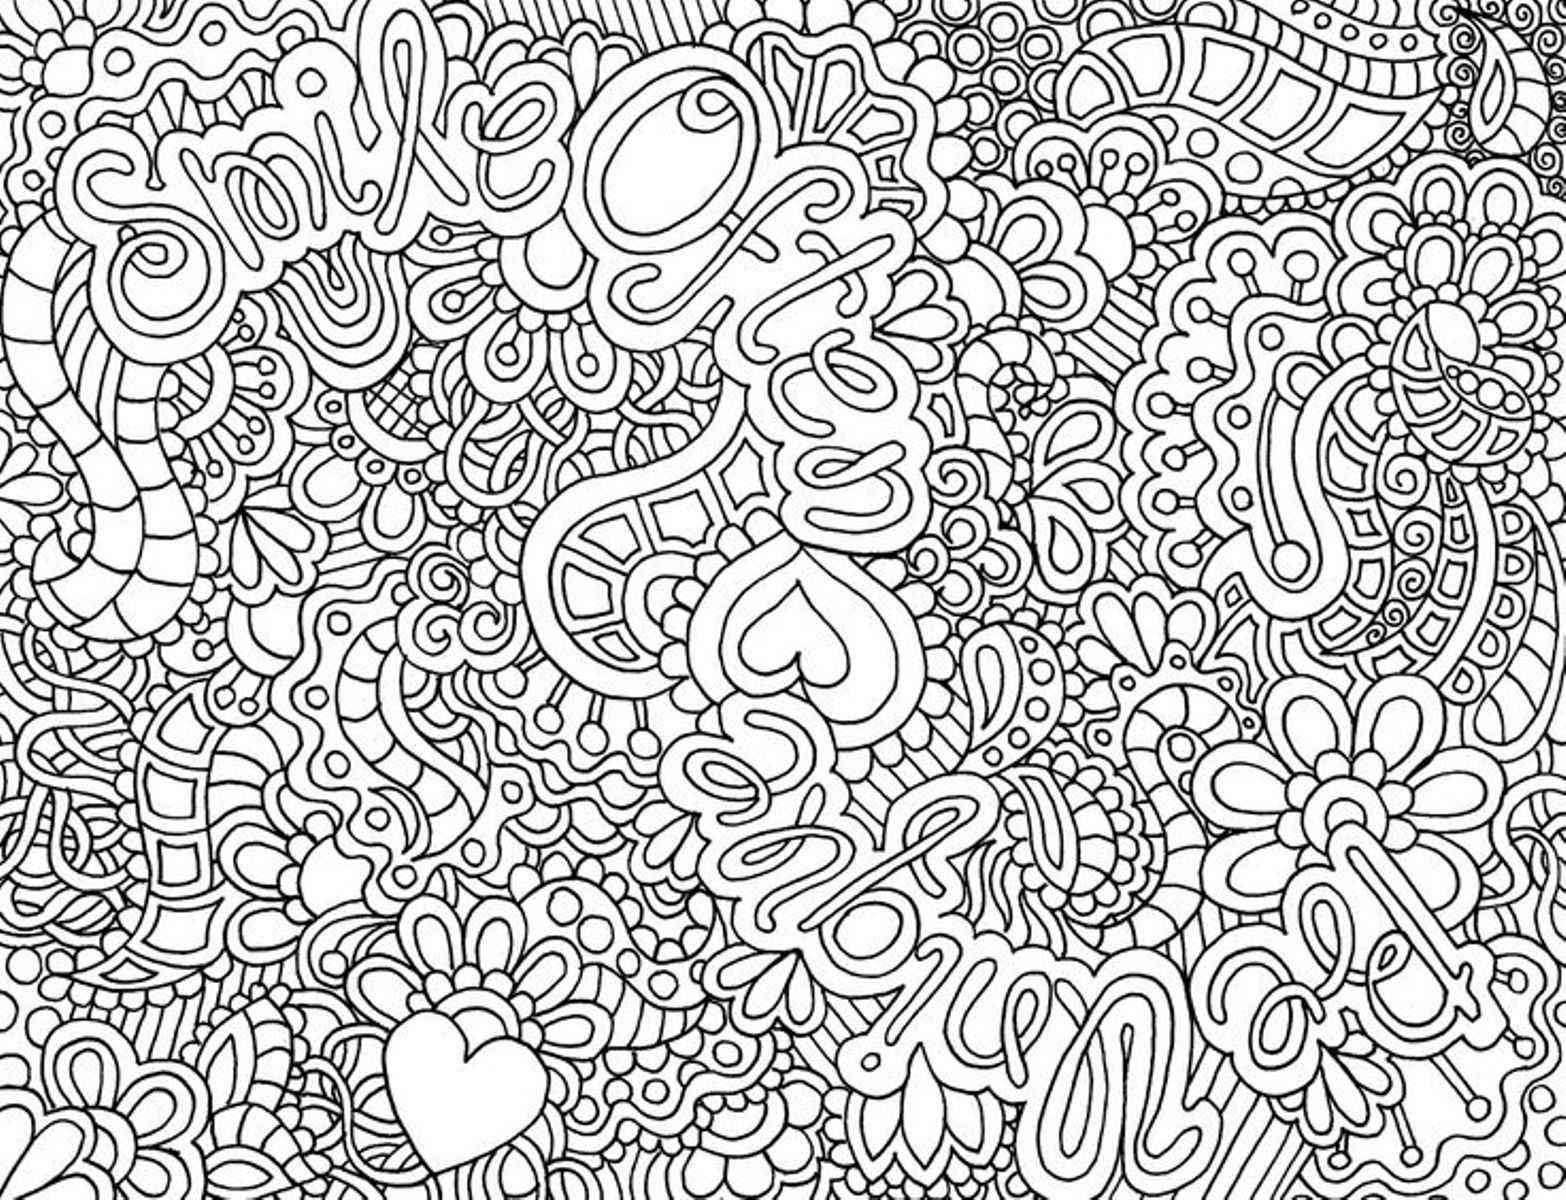 Printable Adult Coloring Pages Abstract AZ Coloring Pages